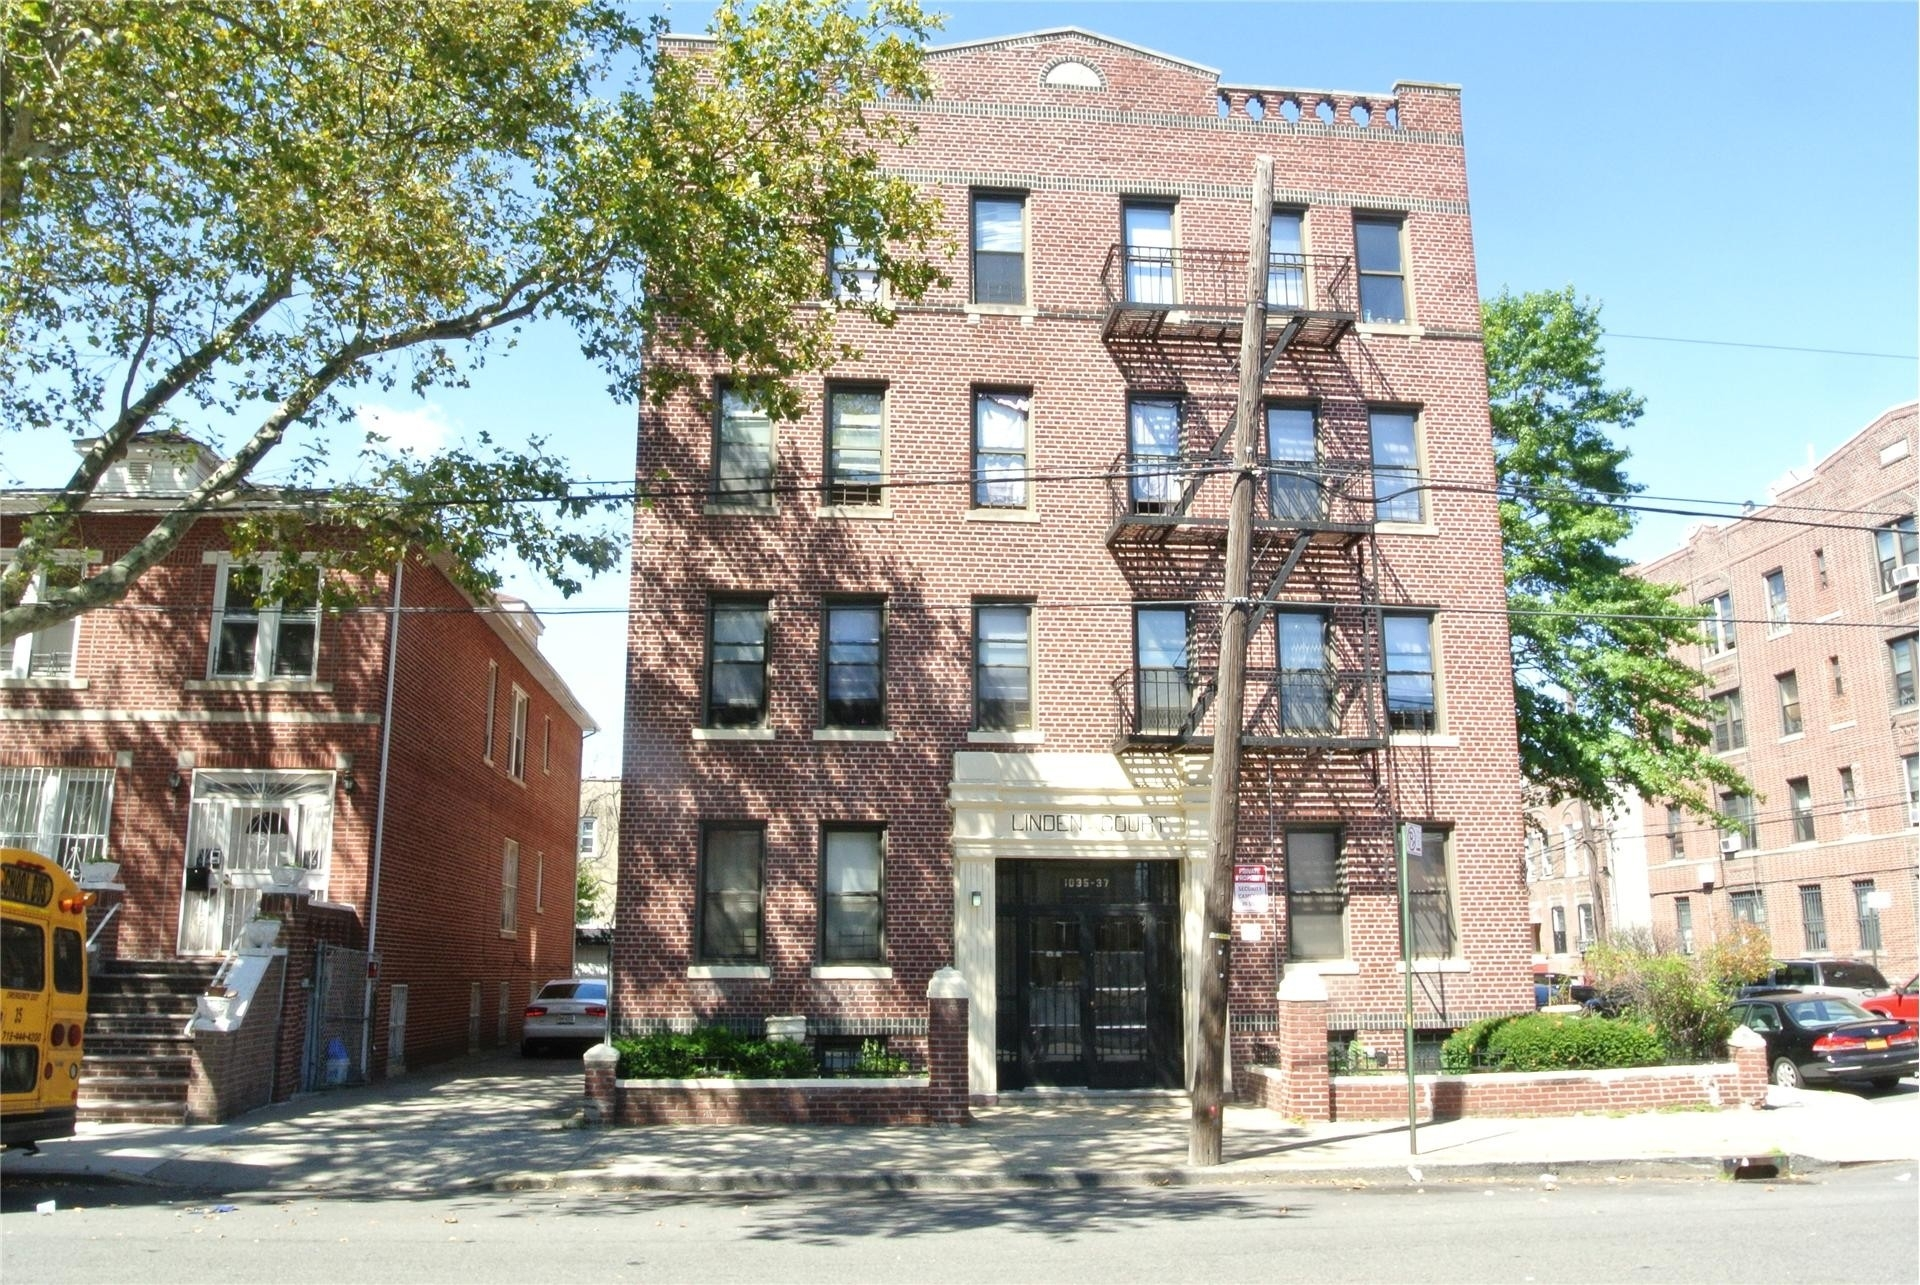 1. 建於1035 Willmohr St, East Flatbush, Brooklyn, NY